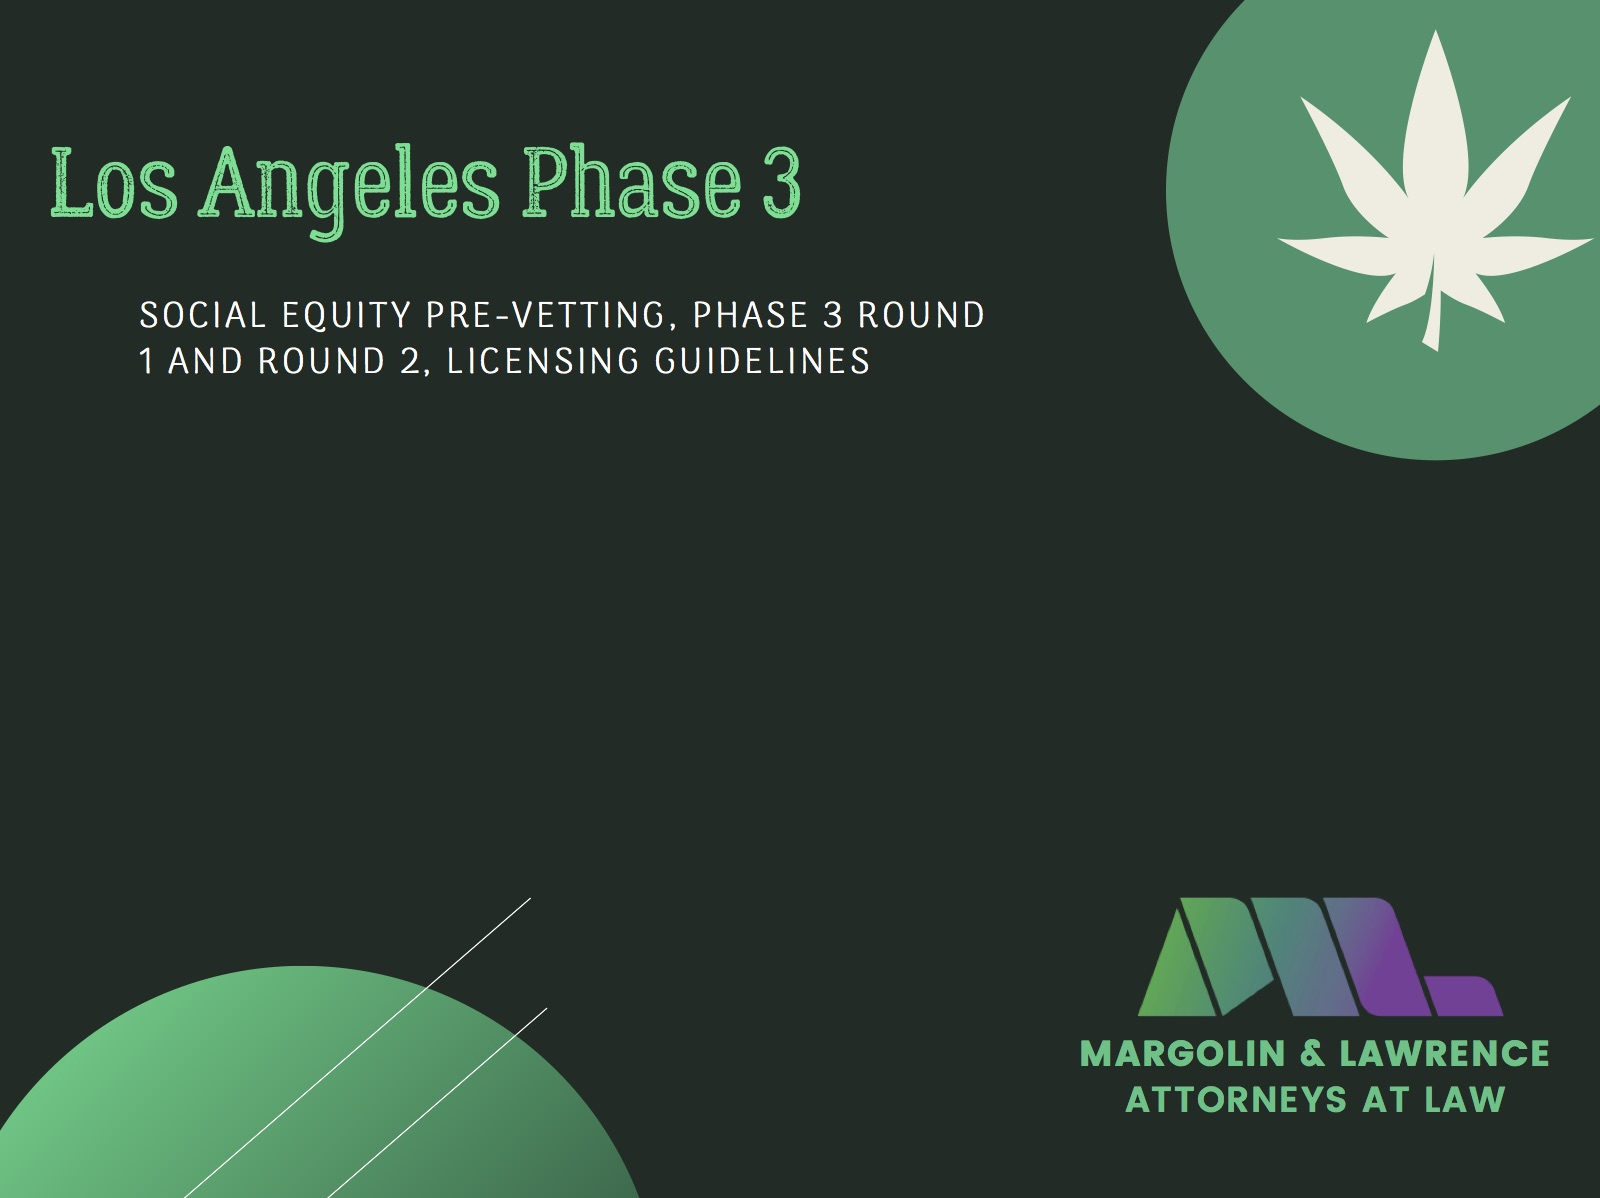 Everything You Need to Know About Los Angeles Phase 3 Licensing